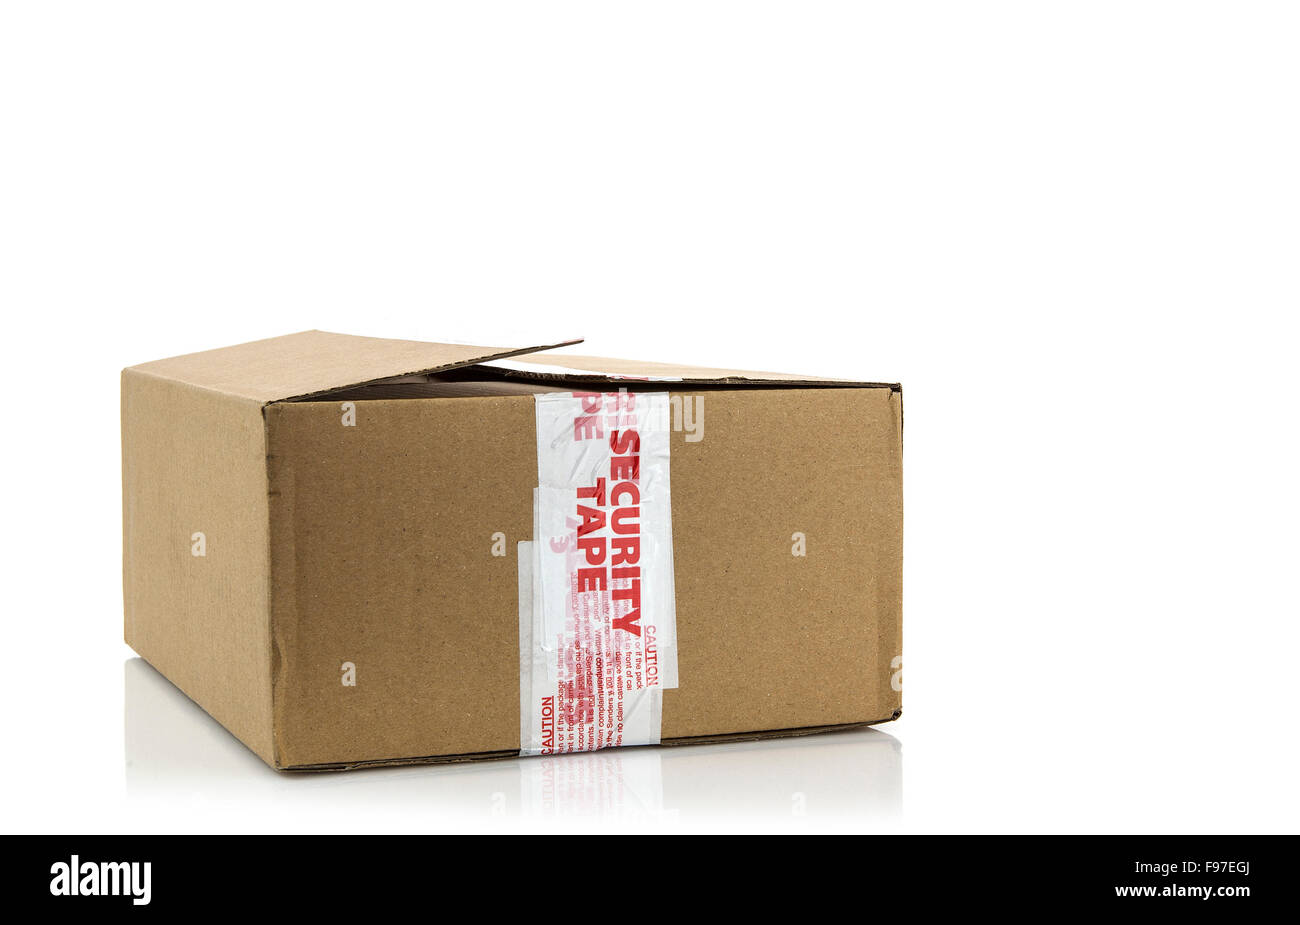 Cardboard Box with broken  security seal on white background - Stock Image